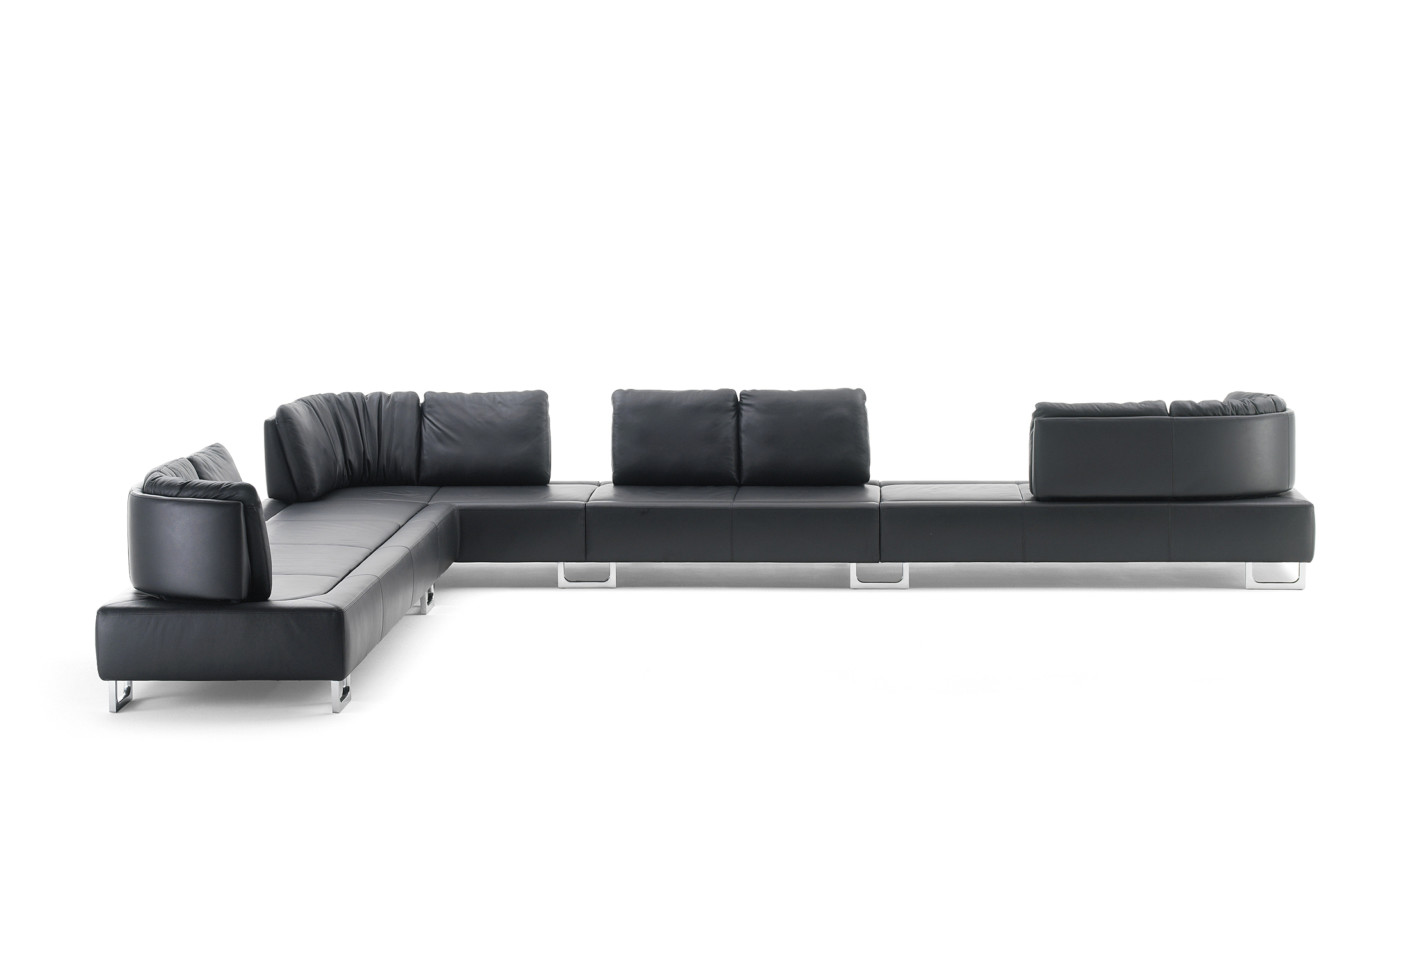 ds 165 corner sofa by de sede stylepark. Black Bedroom Furniture Sets. Home Design Ideas